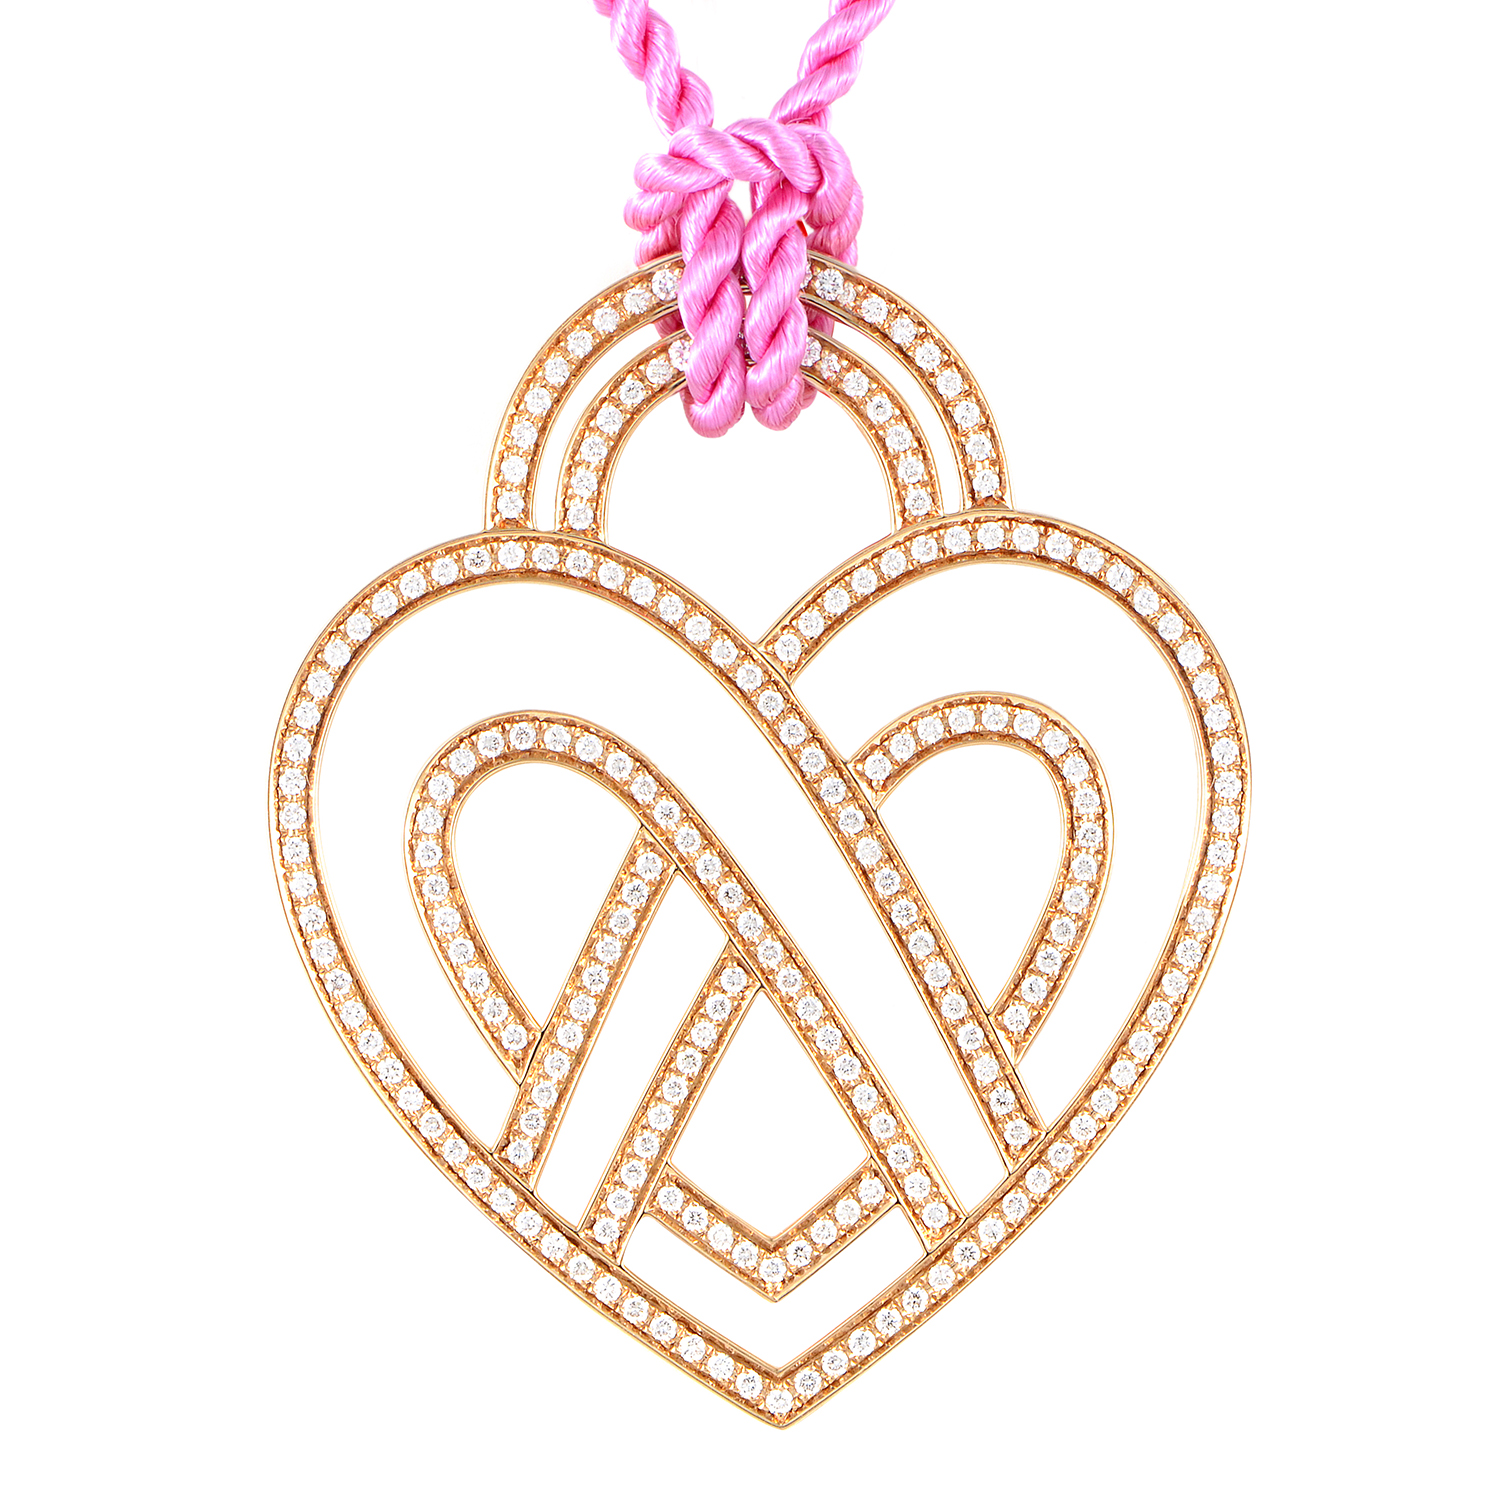 18K Rose Gold Diamond Heart Pendant & Cord Necklace PPC8752PNK